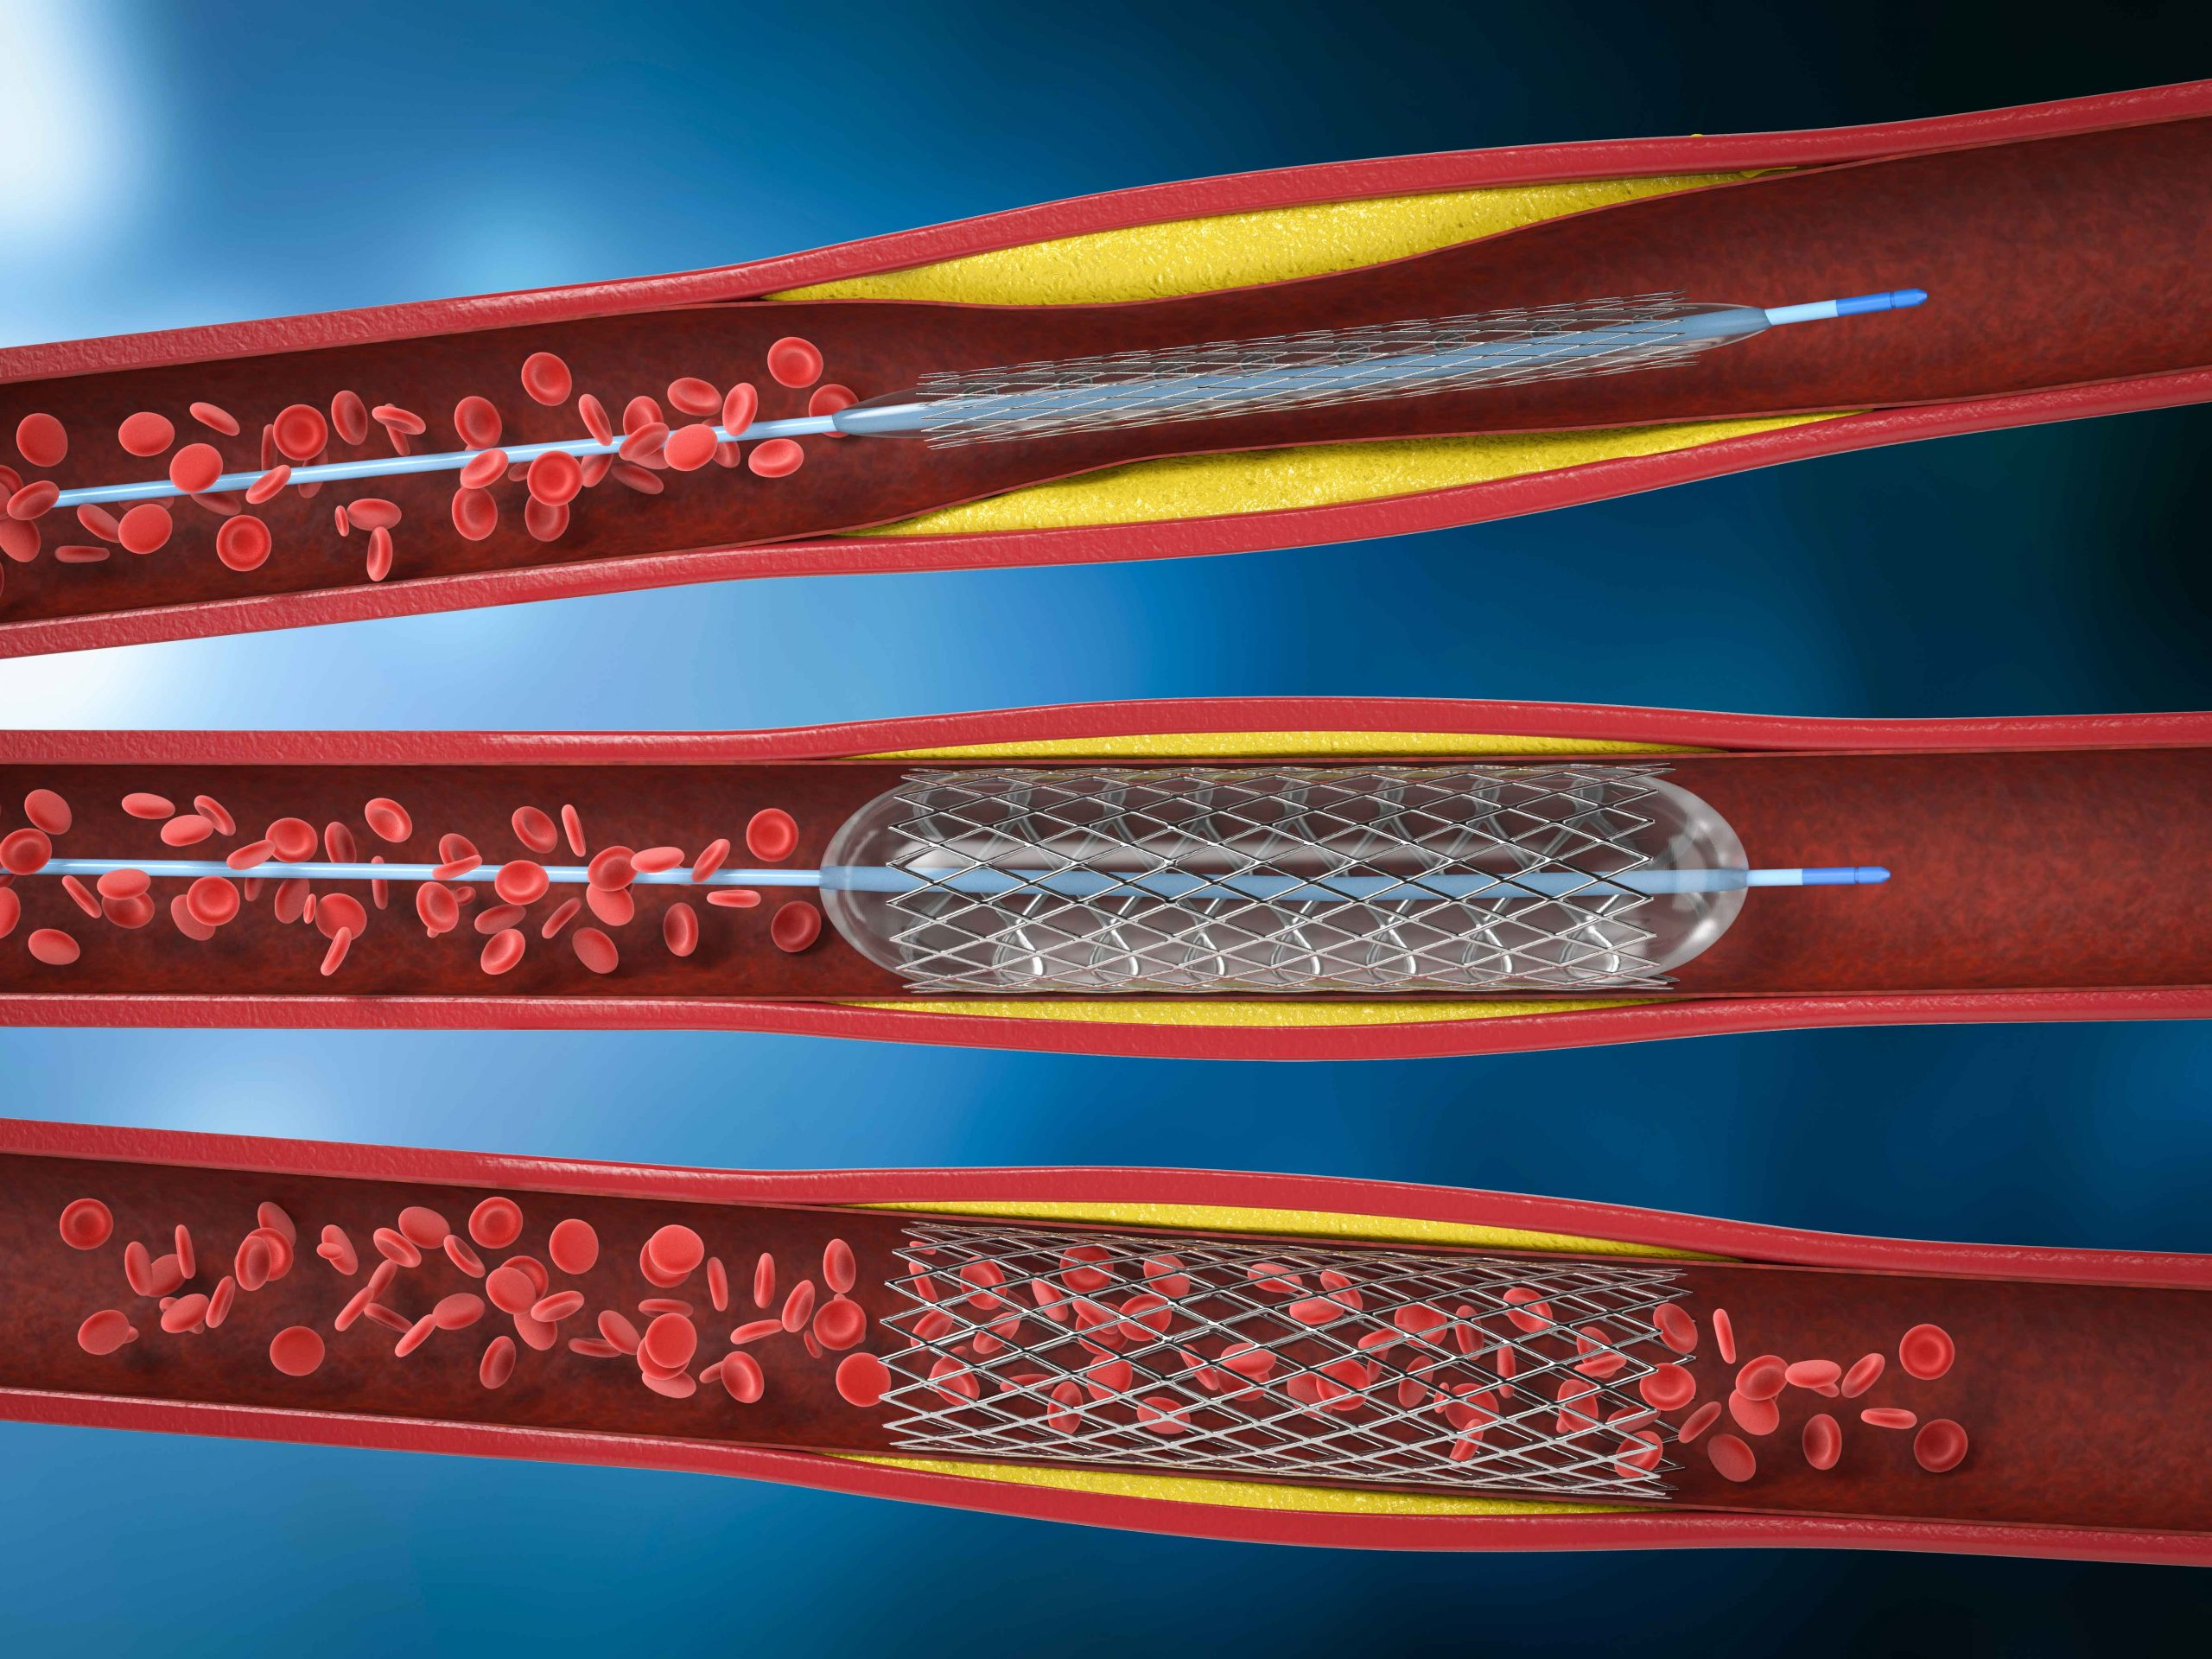 Angioplasty / Stent placement